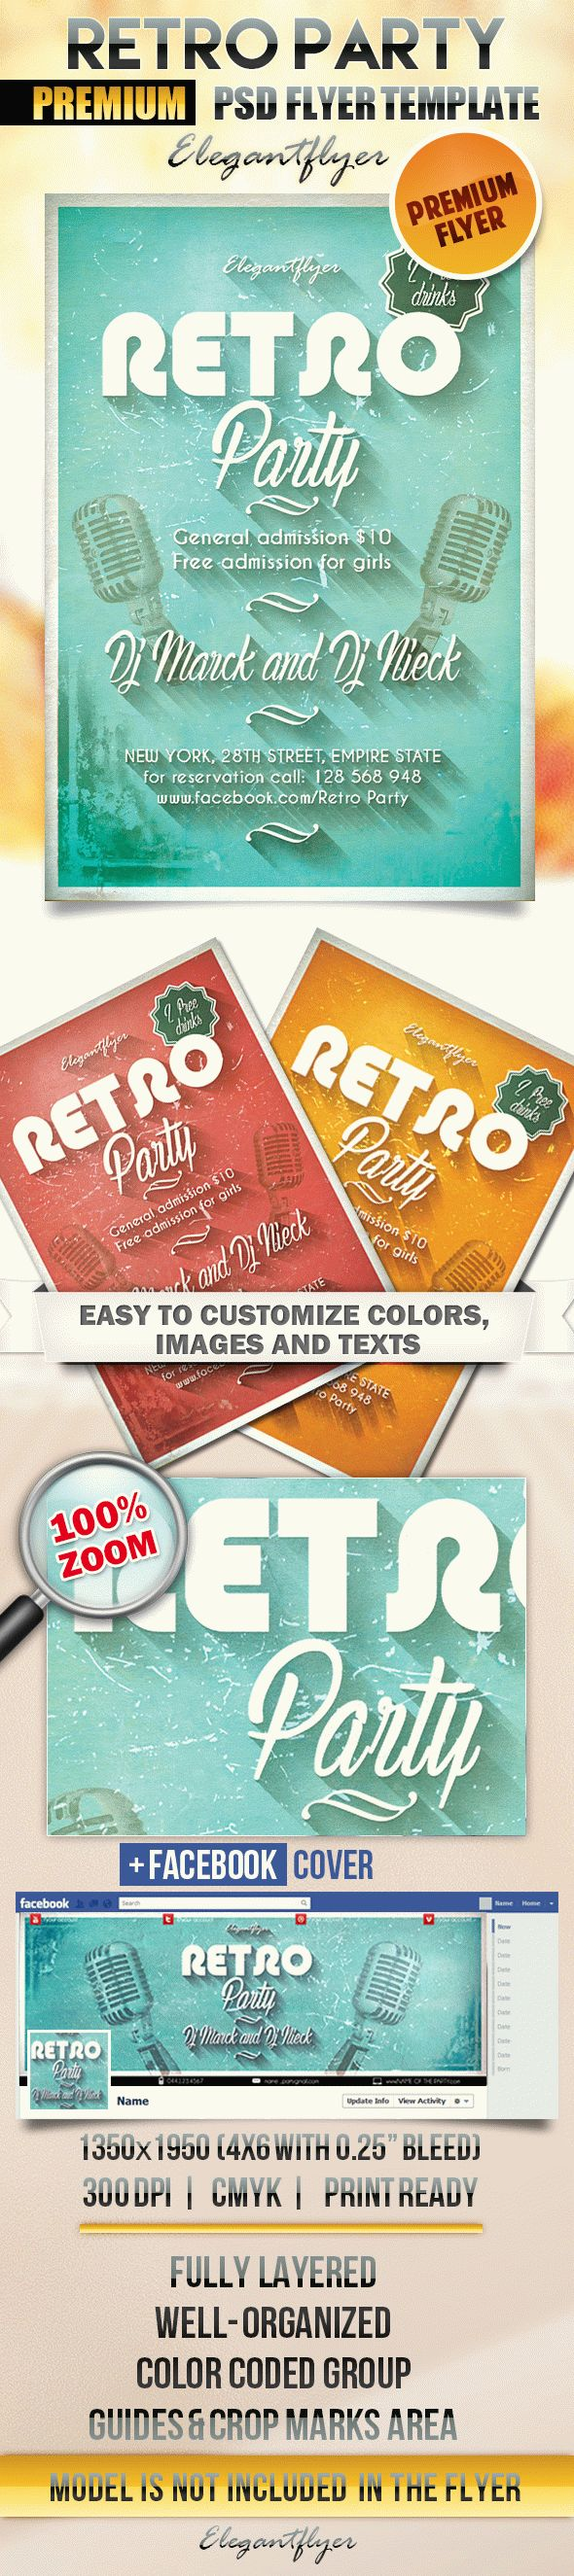 retro party flyer psd template facebook cover by elegantflyer retro party 2 flyer psd template facebook cover